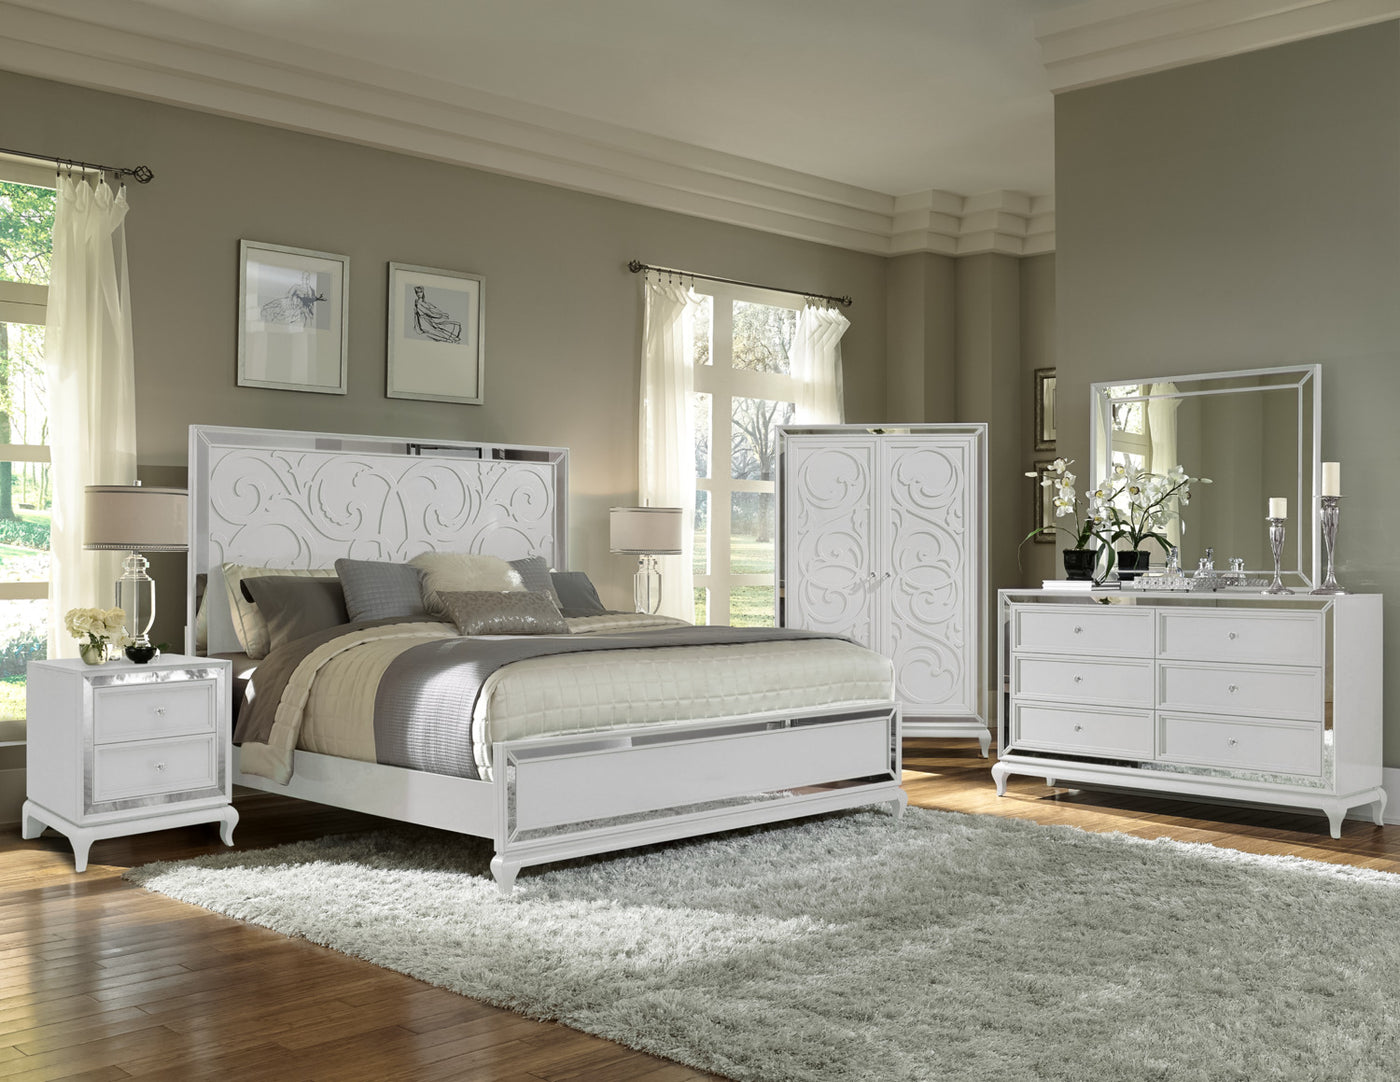 Arctic Ice 5-Piece King Bedroom Set - White | Leon's on white bedroom sets for teens, white modern bedroom sets, white queen bedroom sets, all white bedroom sets, white king beds, white bedroom curtains, white quilt bedding sets, white master bedroom sets, white contemporary bedroom, white tropical bedroom sets, white and gray master bedroom, white wash bedroom sets, off white bedroom sets, king size headboards and footboards sets, white bedroom decorations, king comforter sets, white and turquoise bedroom, white bedroom set outlet, white vanity sets, white bedroom furniture,